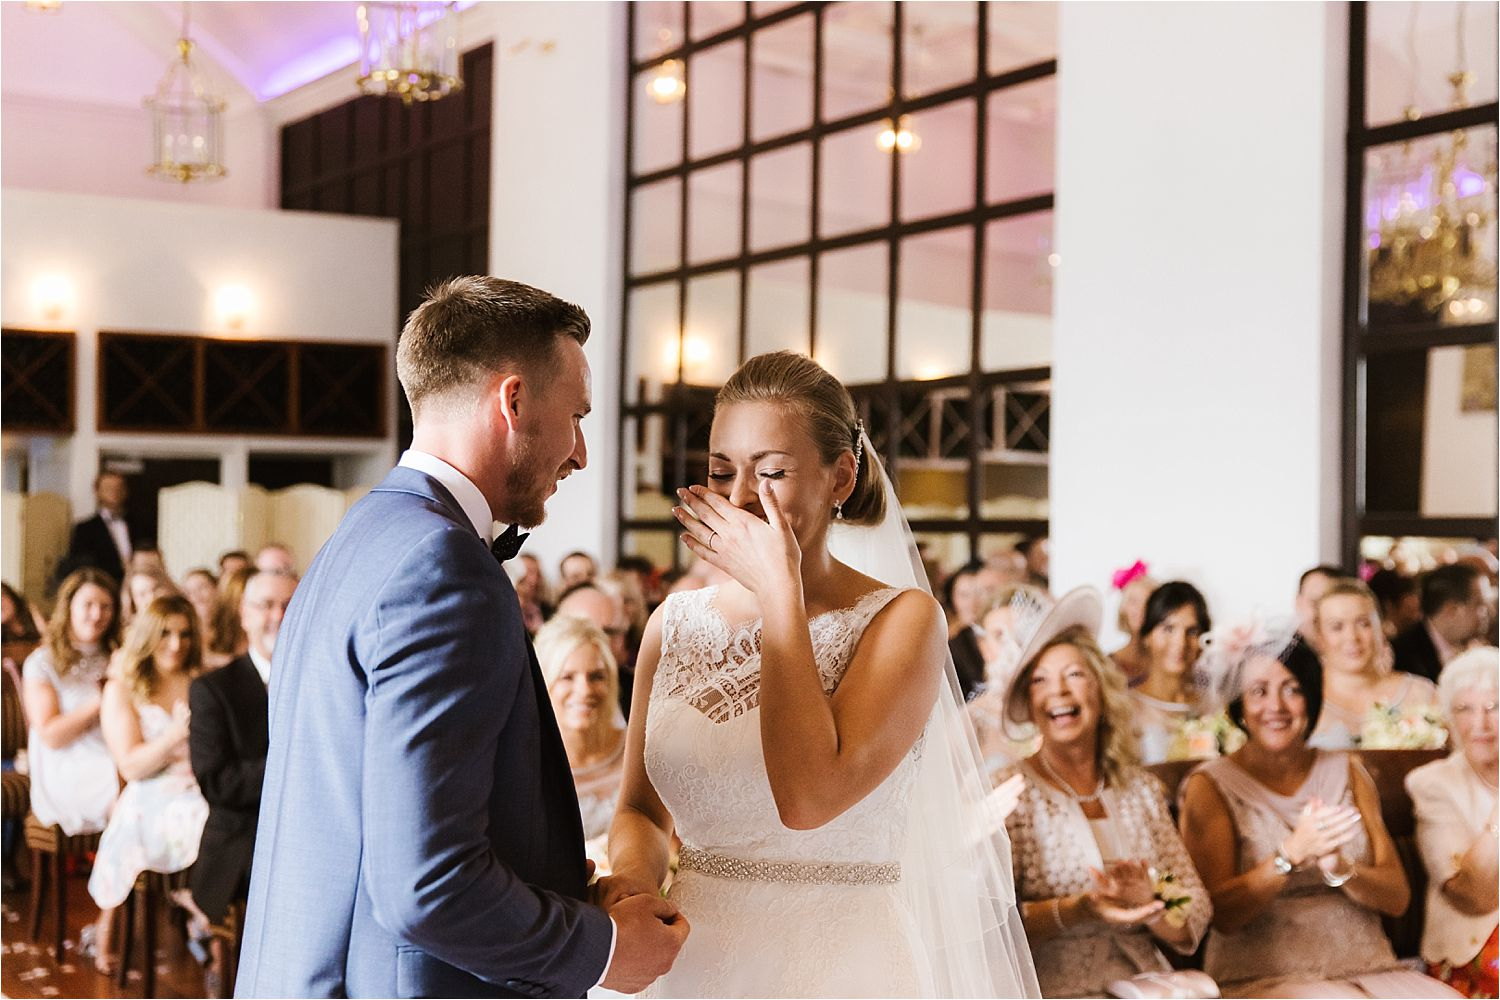 Bride erupts in laughter during vows at Low Wood Bay wedding